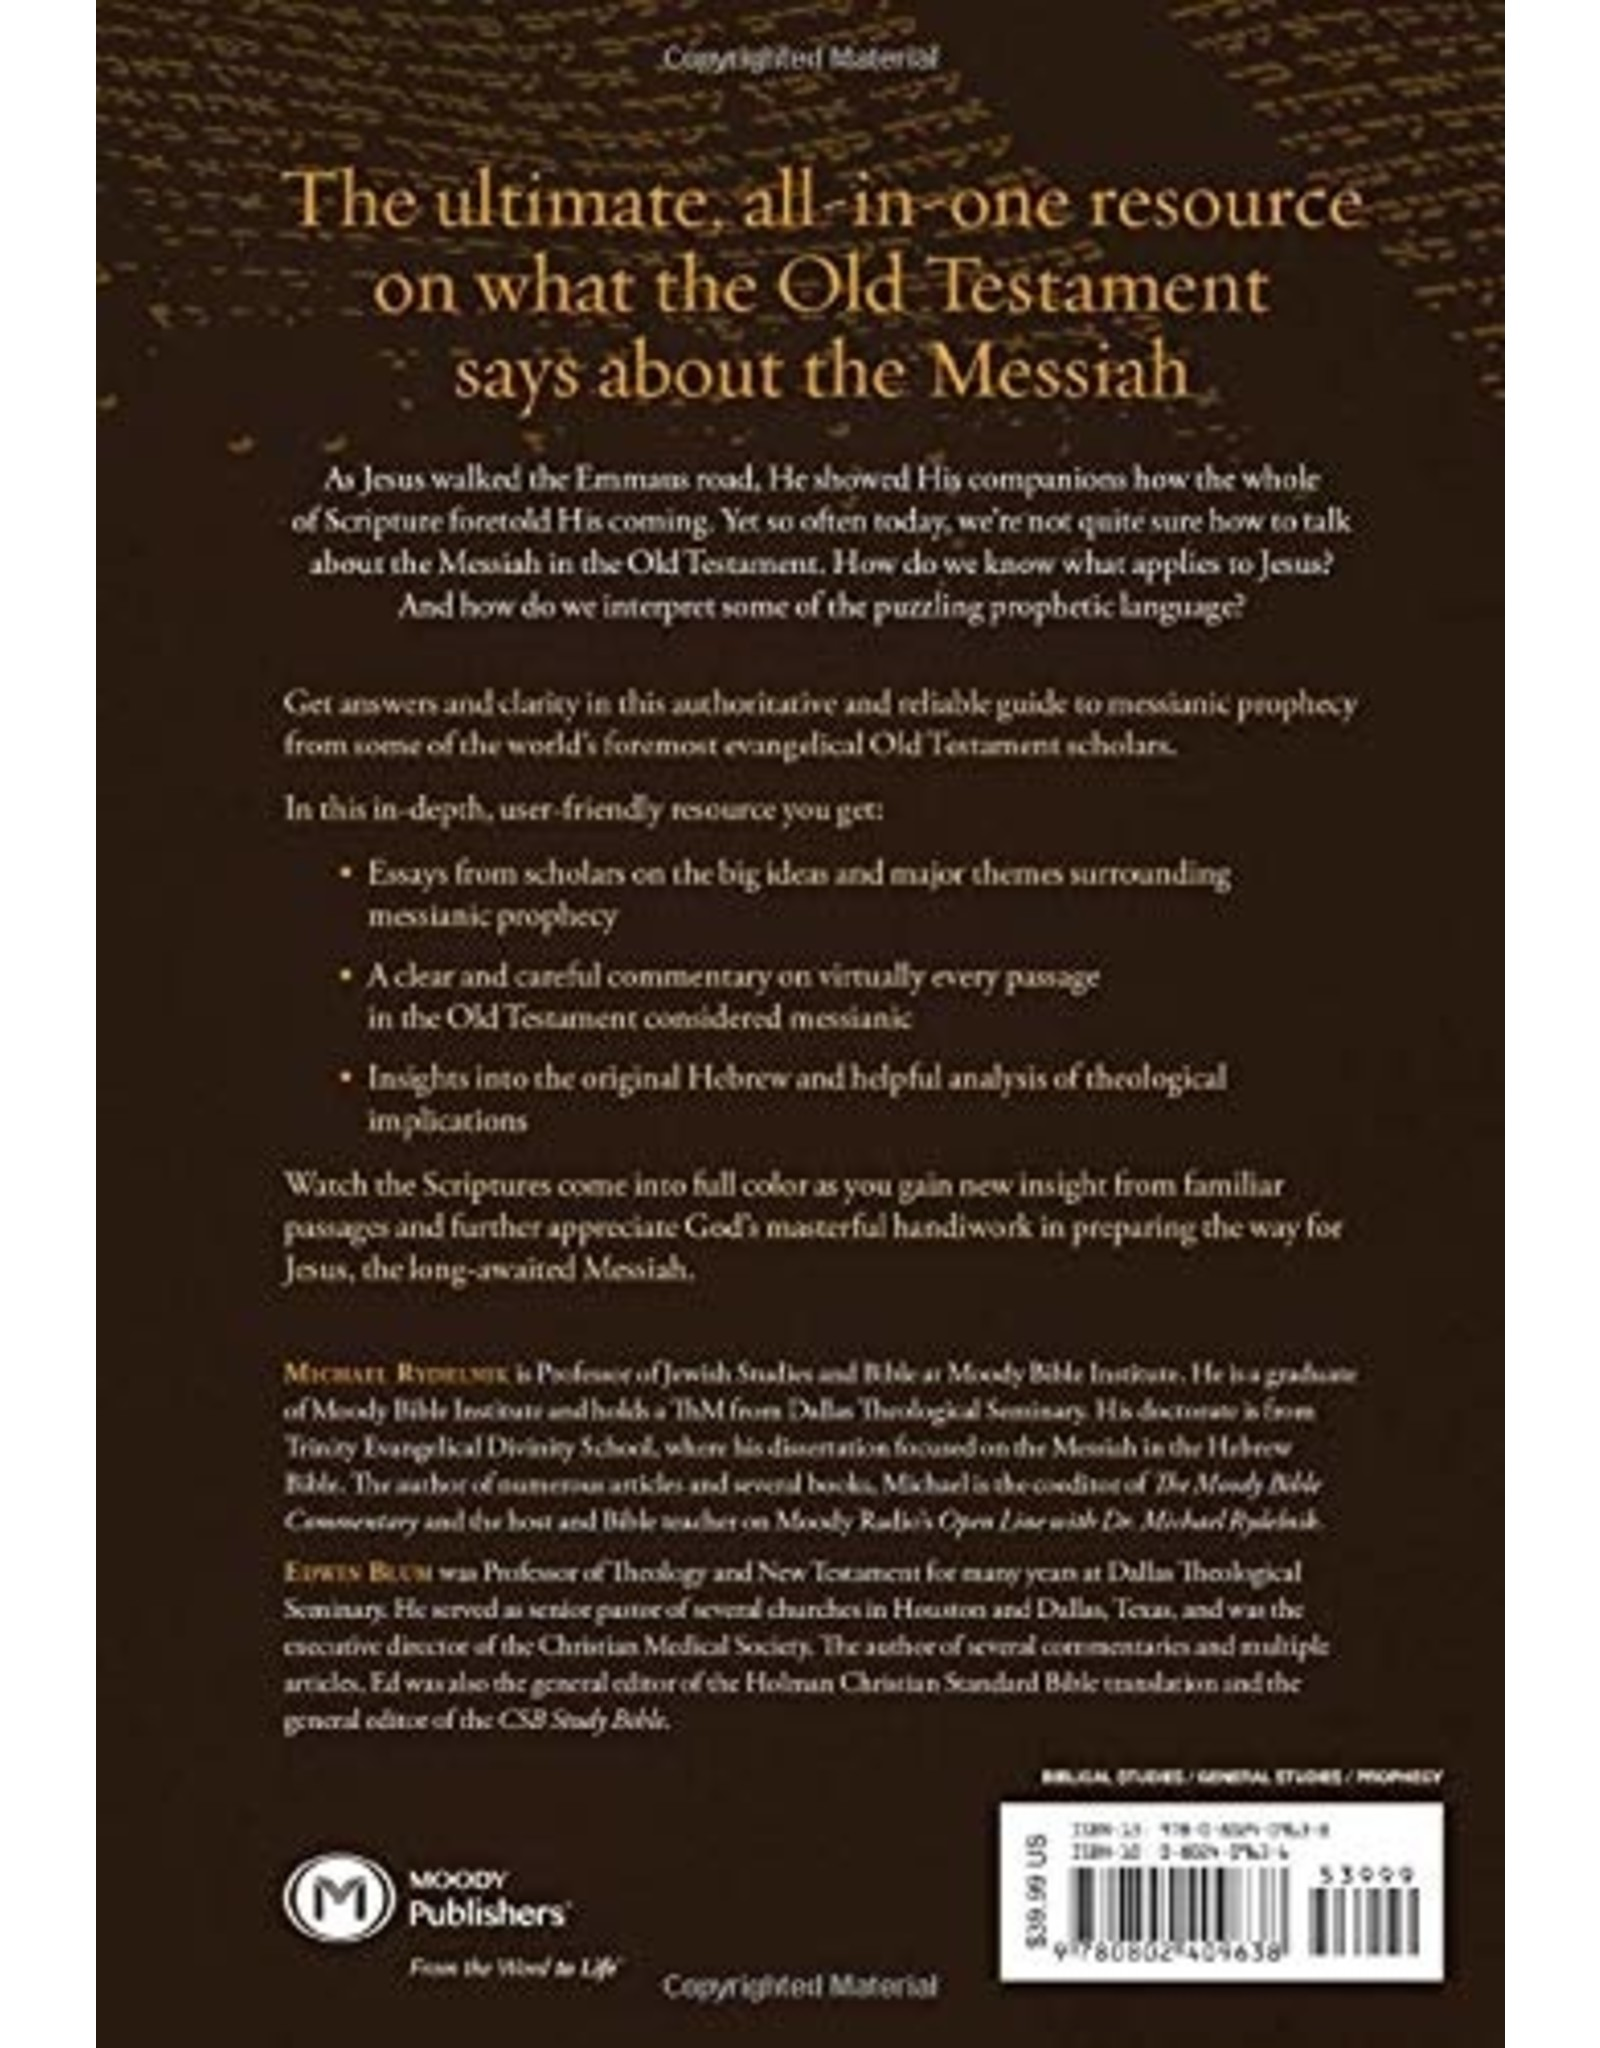 Moody Publishers The Moody Handbook of Messianic Prophecy: Studies and Expositions of the Messiah in the Old Testament